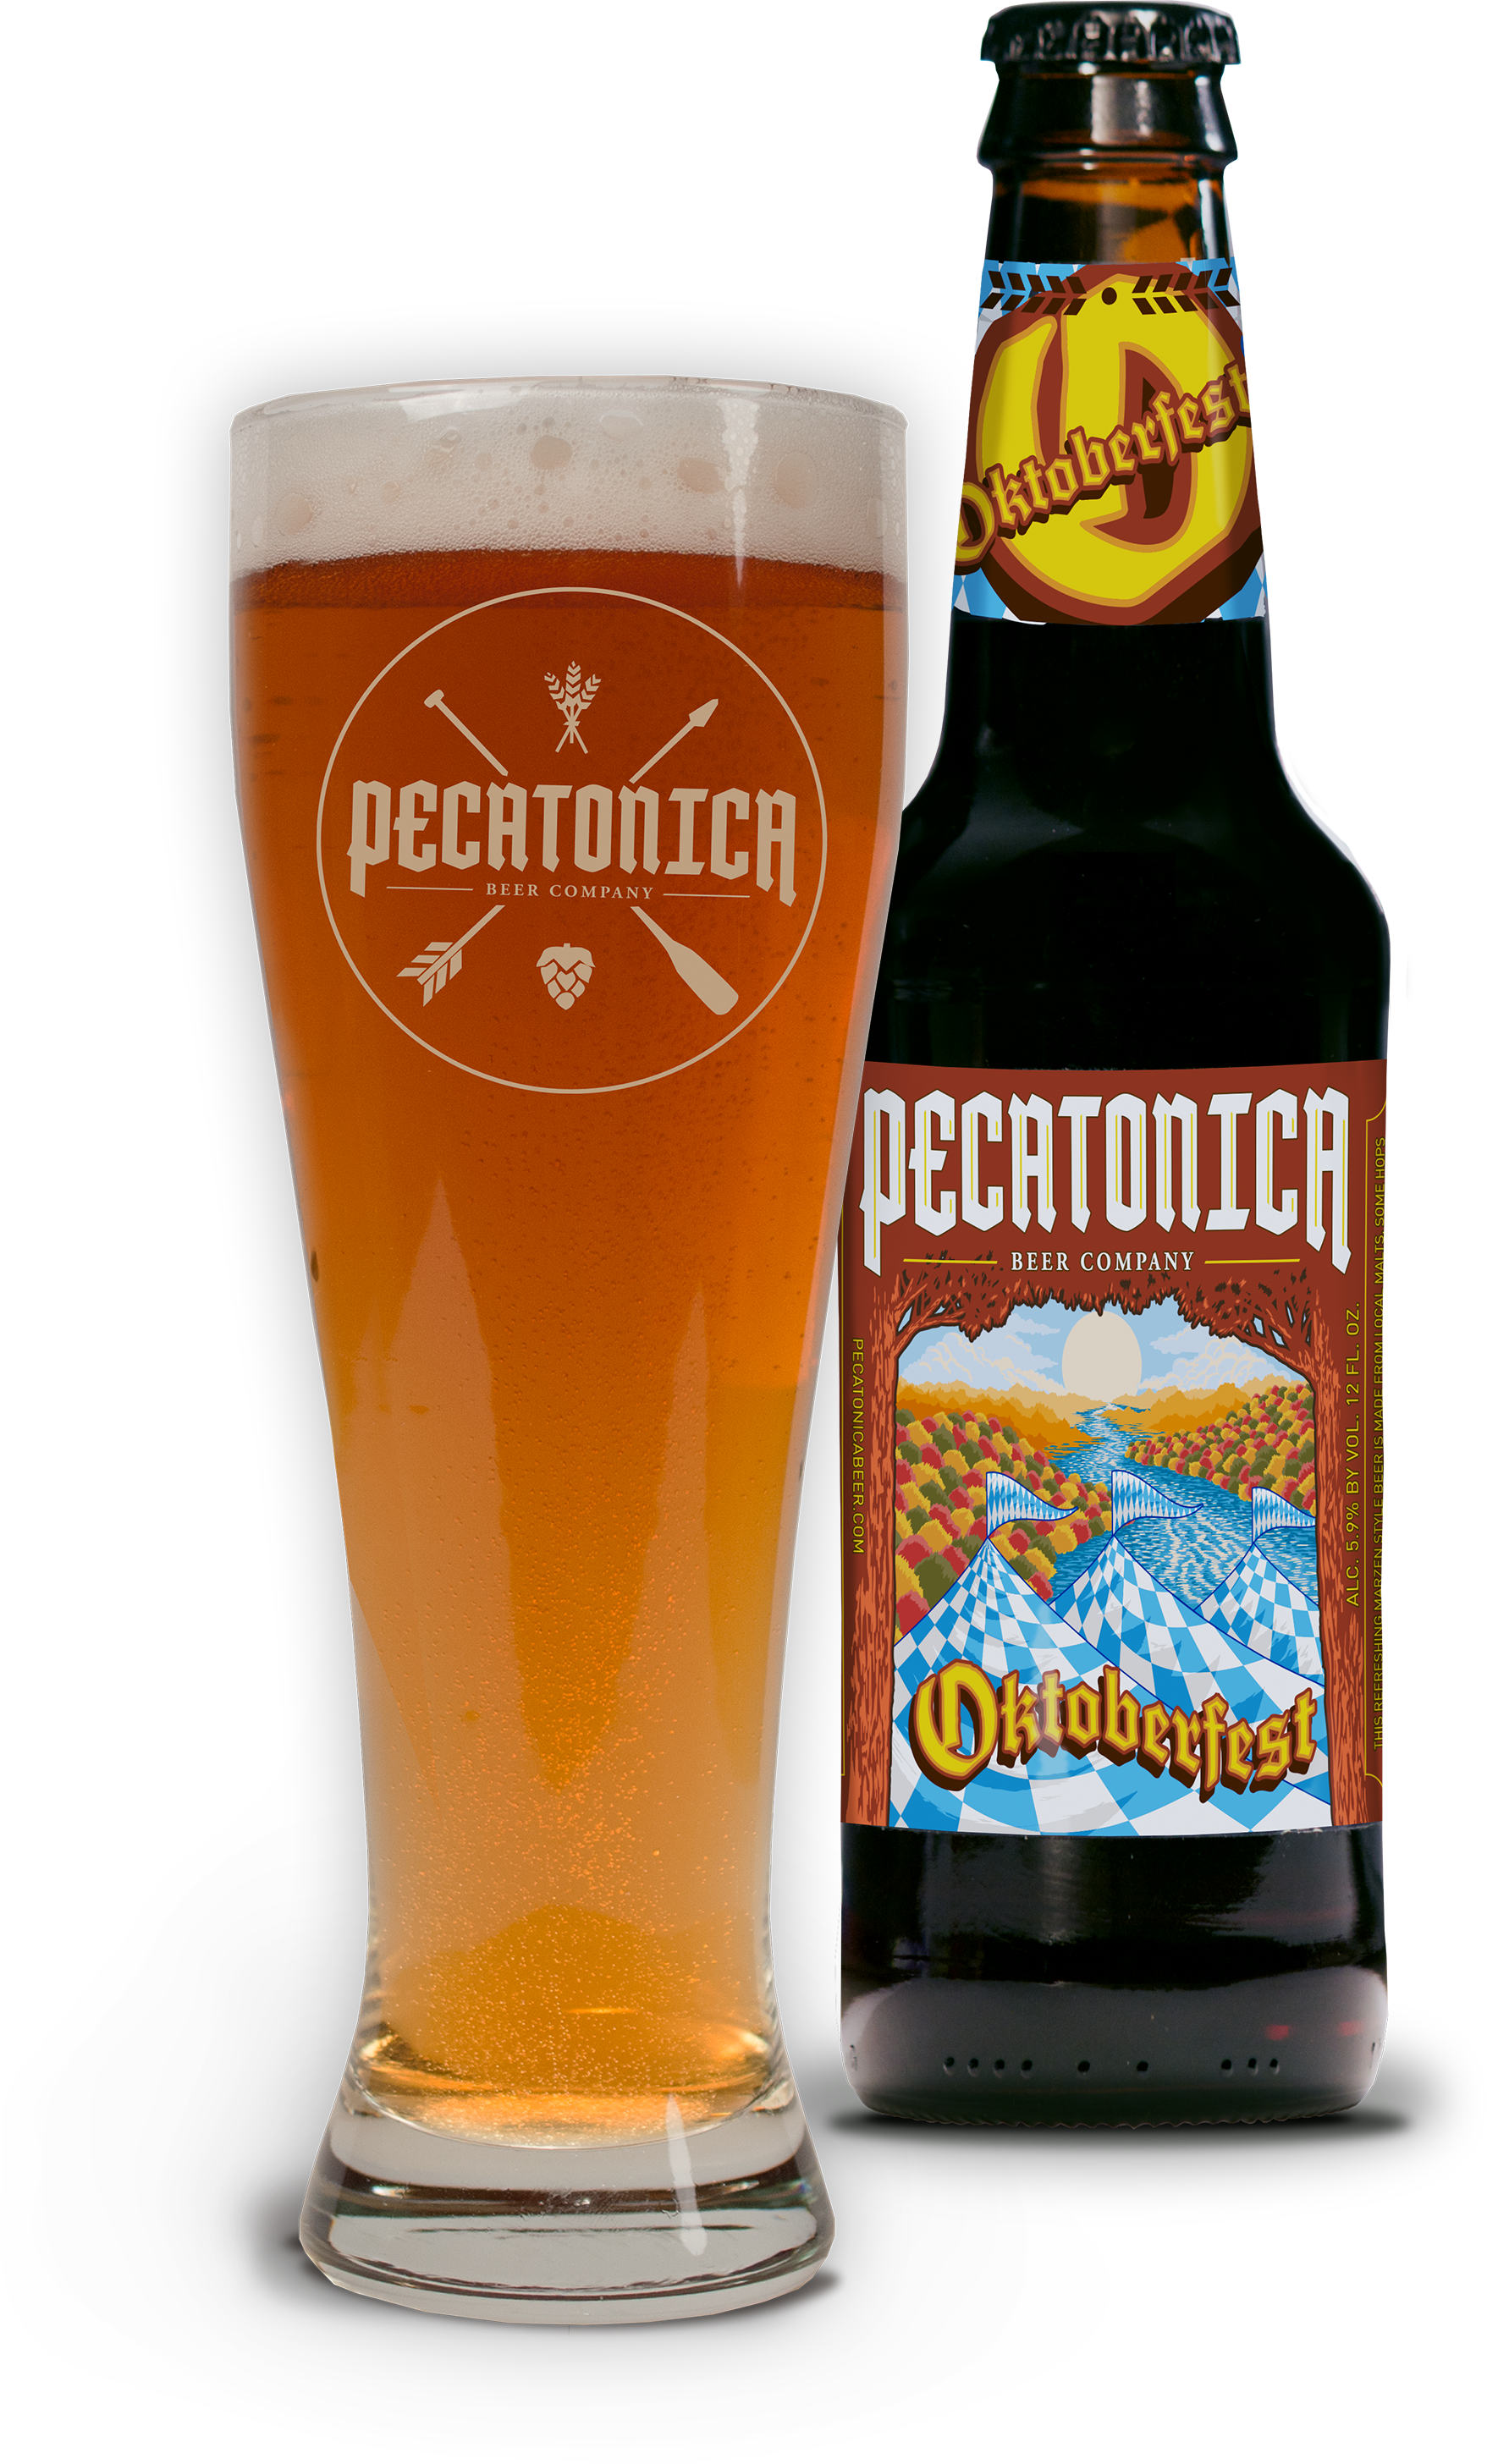 PBC Oktoberfest Beer and bottle